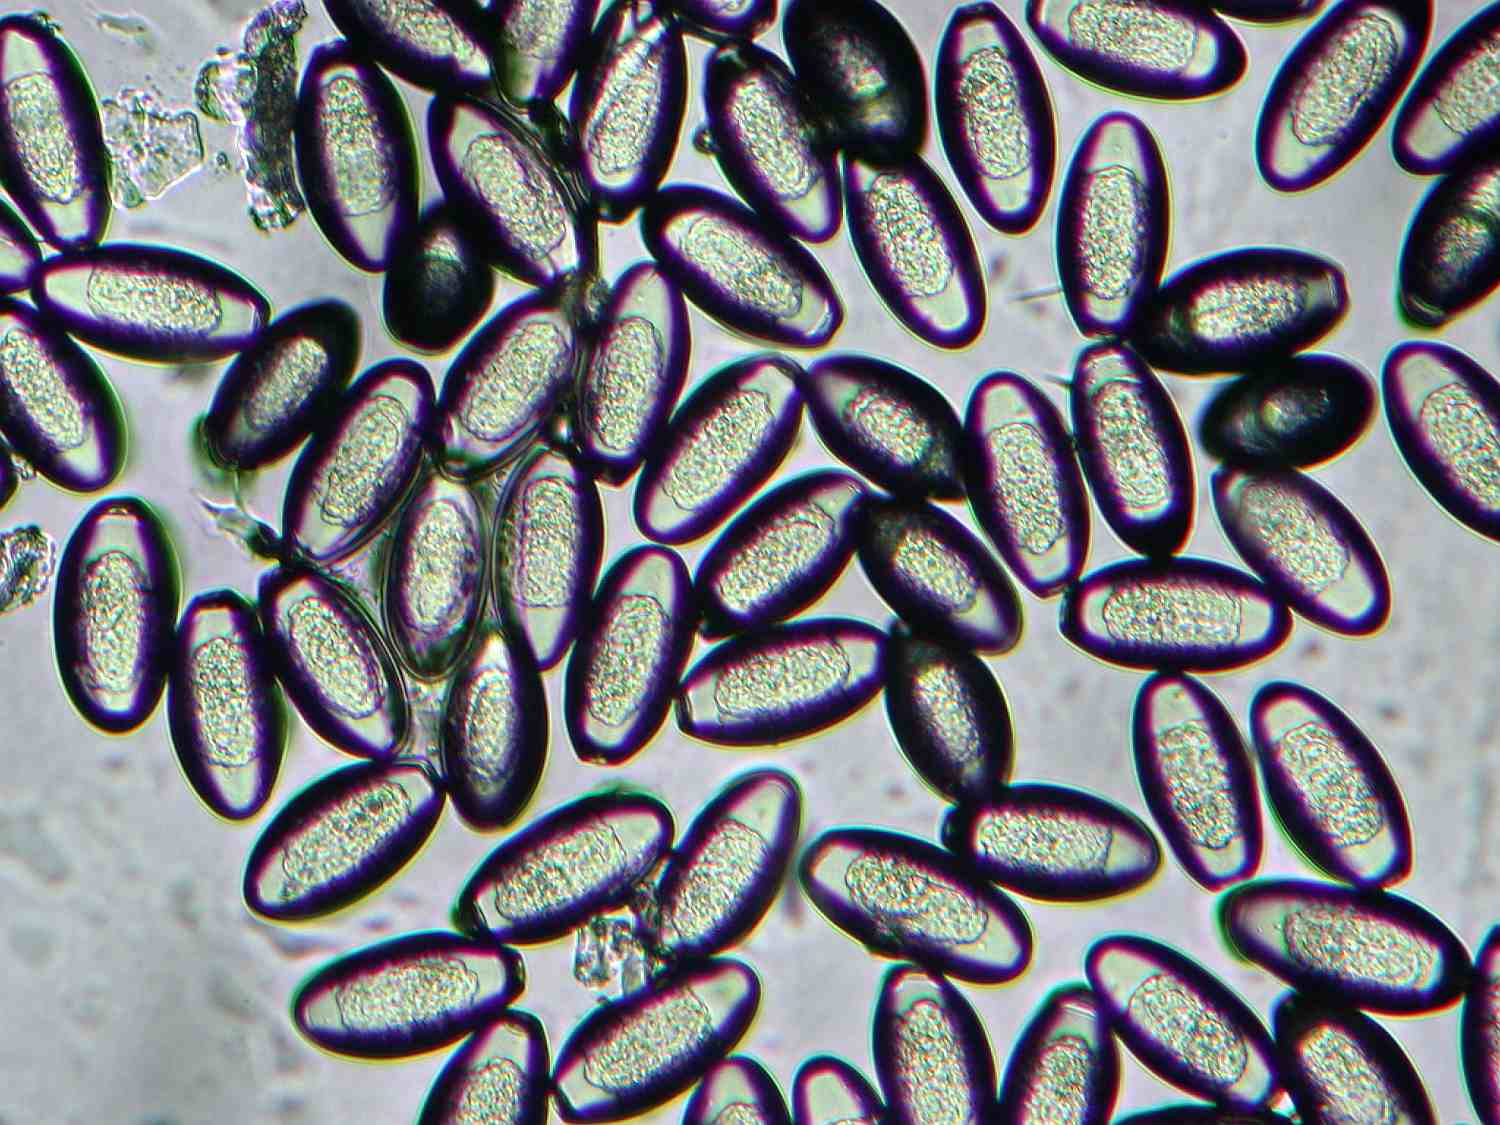 Image of pinworms.